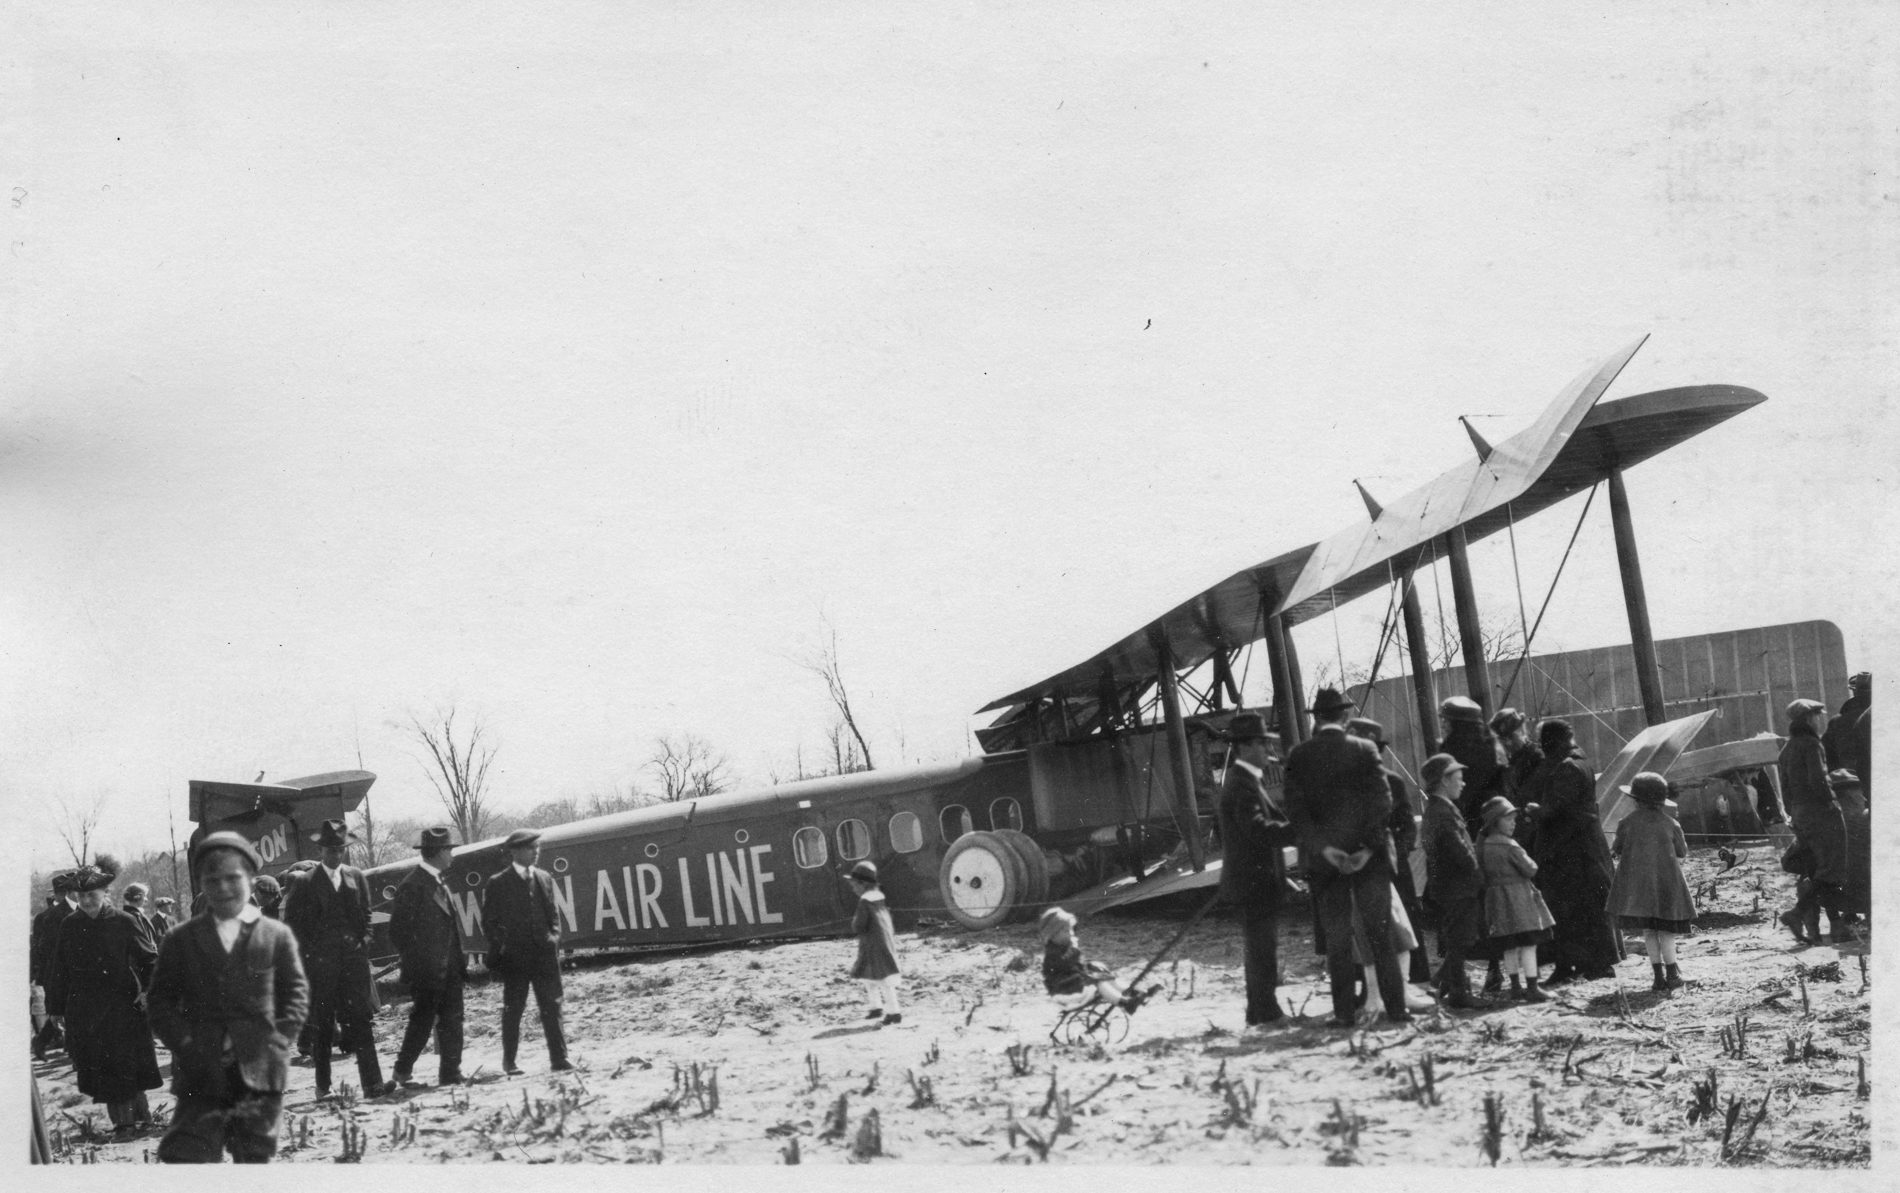 Lawson's second airliner (aka the Lawson Midnight Liner)crashed in a field near Milwaukee, Wisconsin, May 9th, 1921.